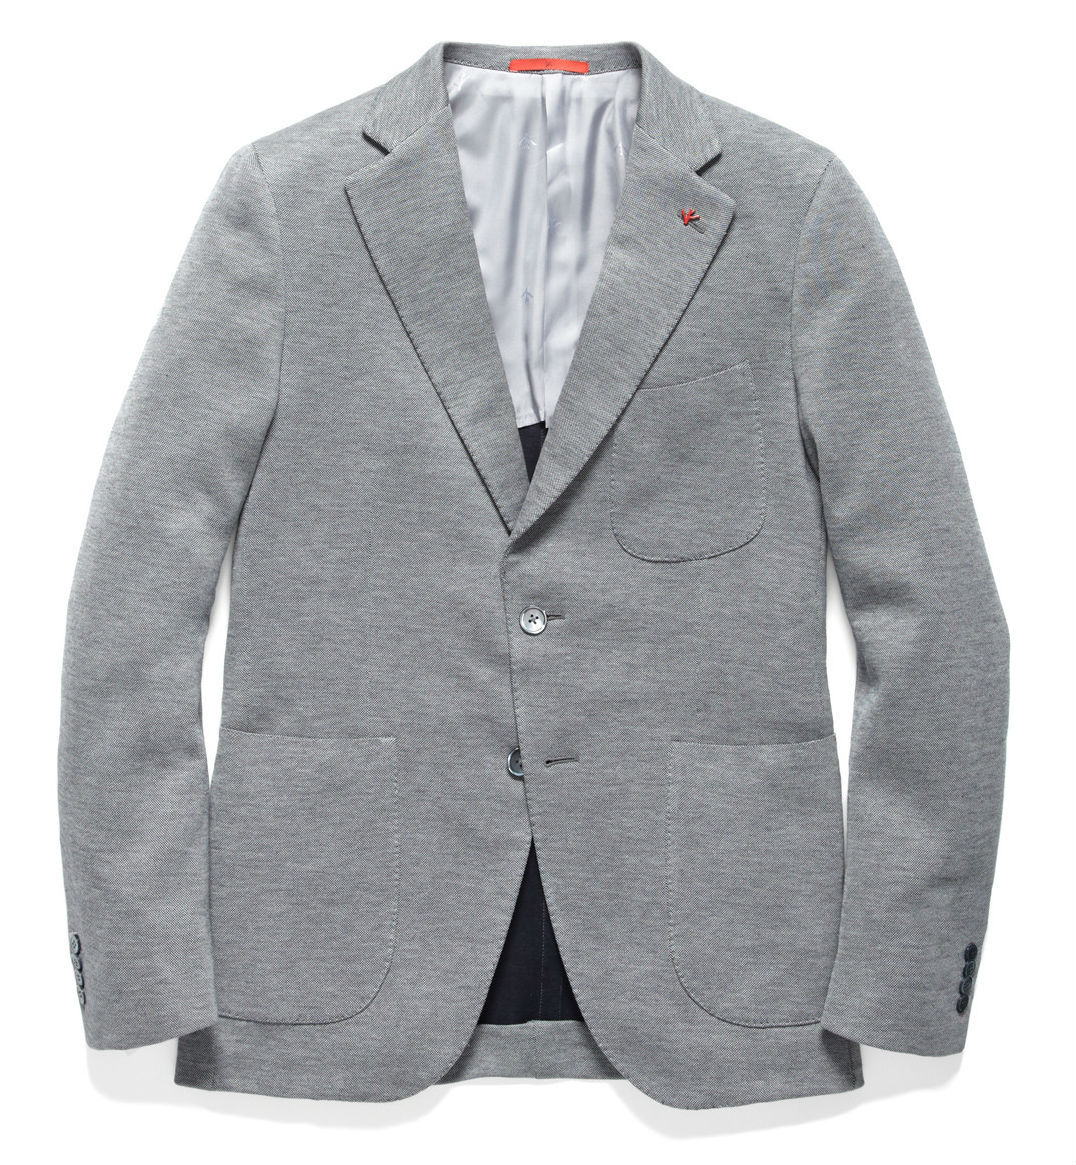 "OUR PICK OF THE WEEK- ISAIA COTTON JERSEY ""SAILOR"" SPORTSCOAT Having recently gleaned much inspiration from Thom Browne and Gant Rugger for all the shades of grey its only fitting that Styleternity's pick of the week is this wonderfully constructed soft shouldered sports-coat.  Constructed in the fashion typical of Neapolitan tailoring this is a simple and beautiful jacket with all the trimmings of its $1077 USD price point. It includes jetted interior pockets, detachable Isaia coral lapel, working kissing buttons and is made with mother of pearl button closures. In the lightest shade of gray this jacket would work equally well with a charcoal or navy tie, and its relaxed construction means you can take it on the road with a polo and chinos if you wish to dress down for a casual occasion.  Available now from Park & Bond STYLETERNITY"